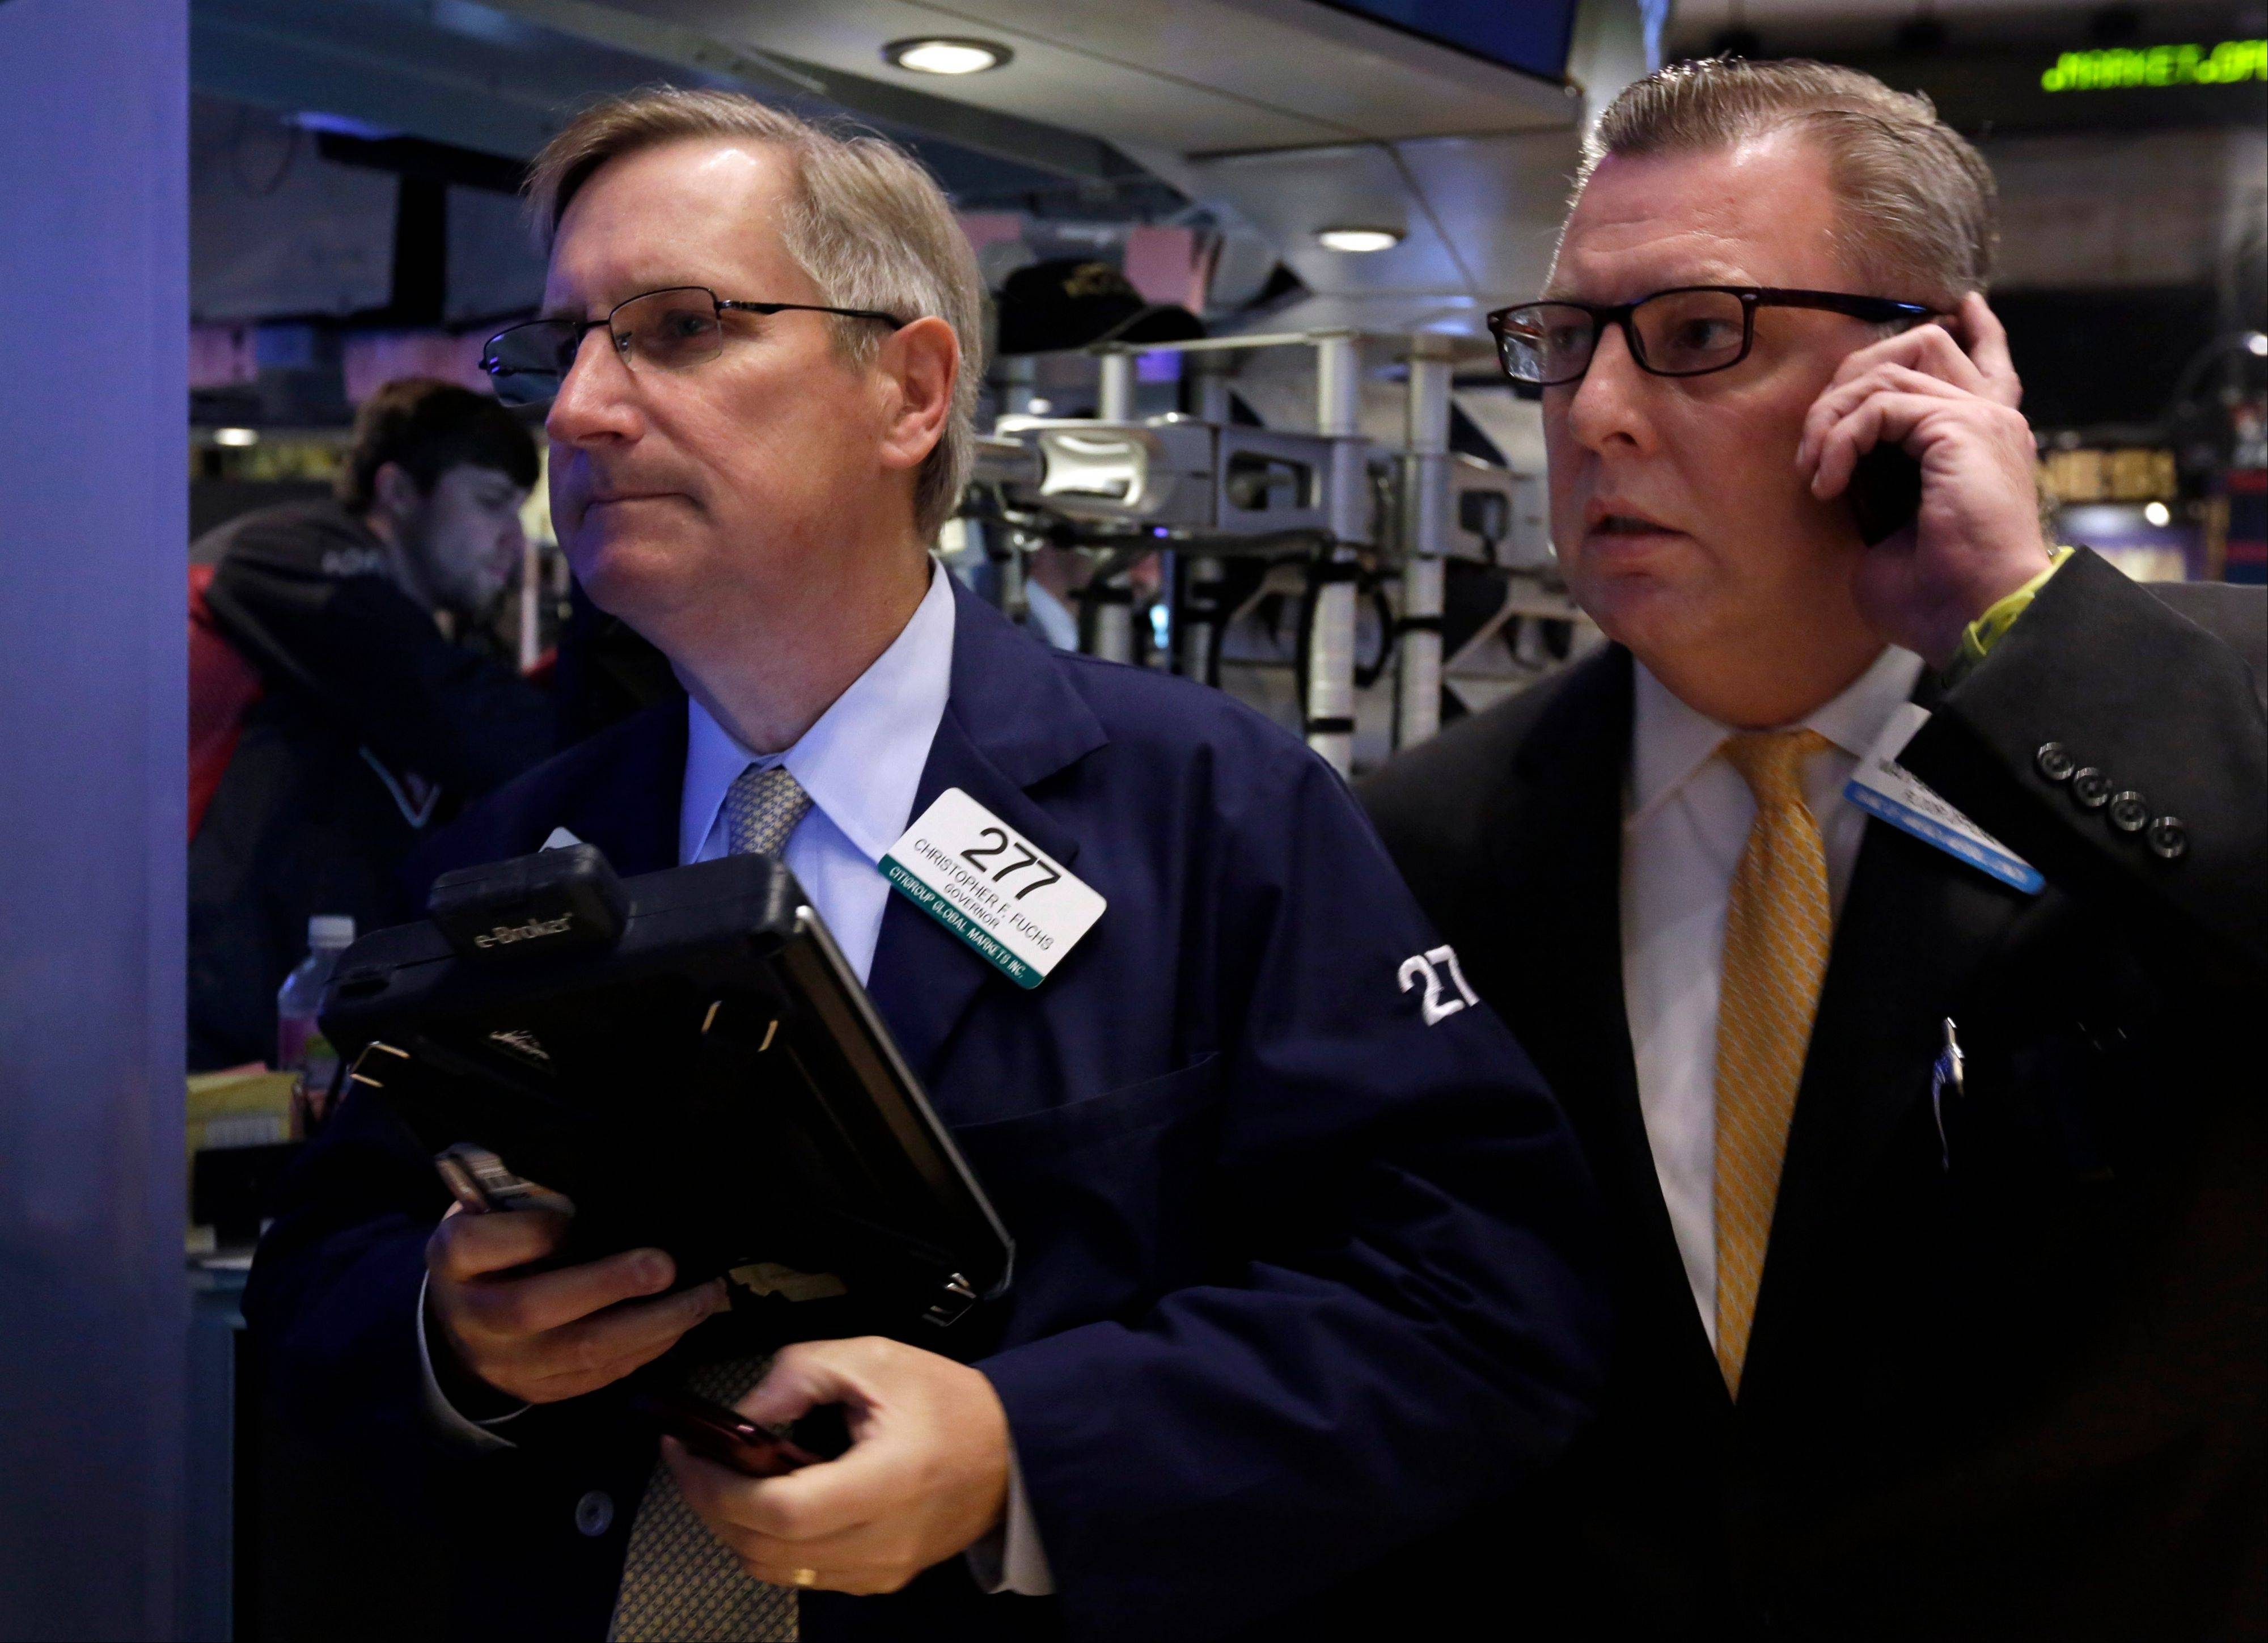 U.S. stocks fell Tuesday, after the Standard & Poor's 500 Index reached a record, as investors weighed federal budget negotiations and better-than-estimated economic data to gauge the timing of any Federal Reserve stimulus cuts.